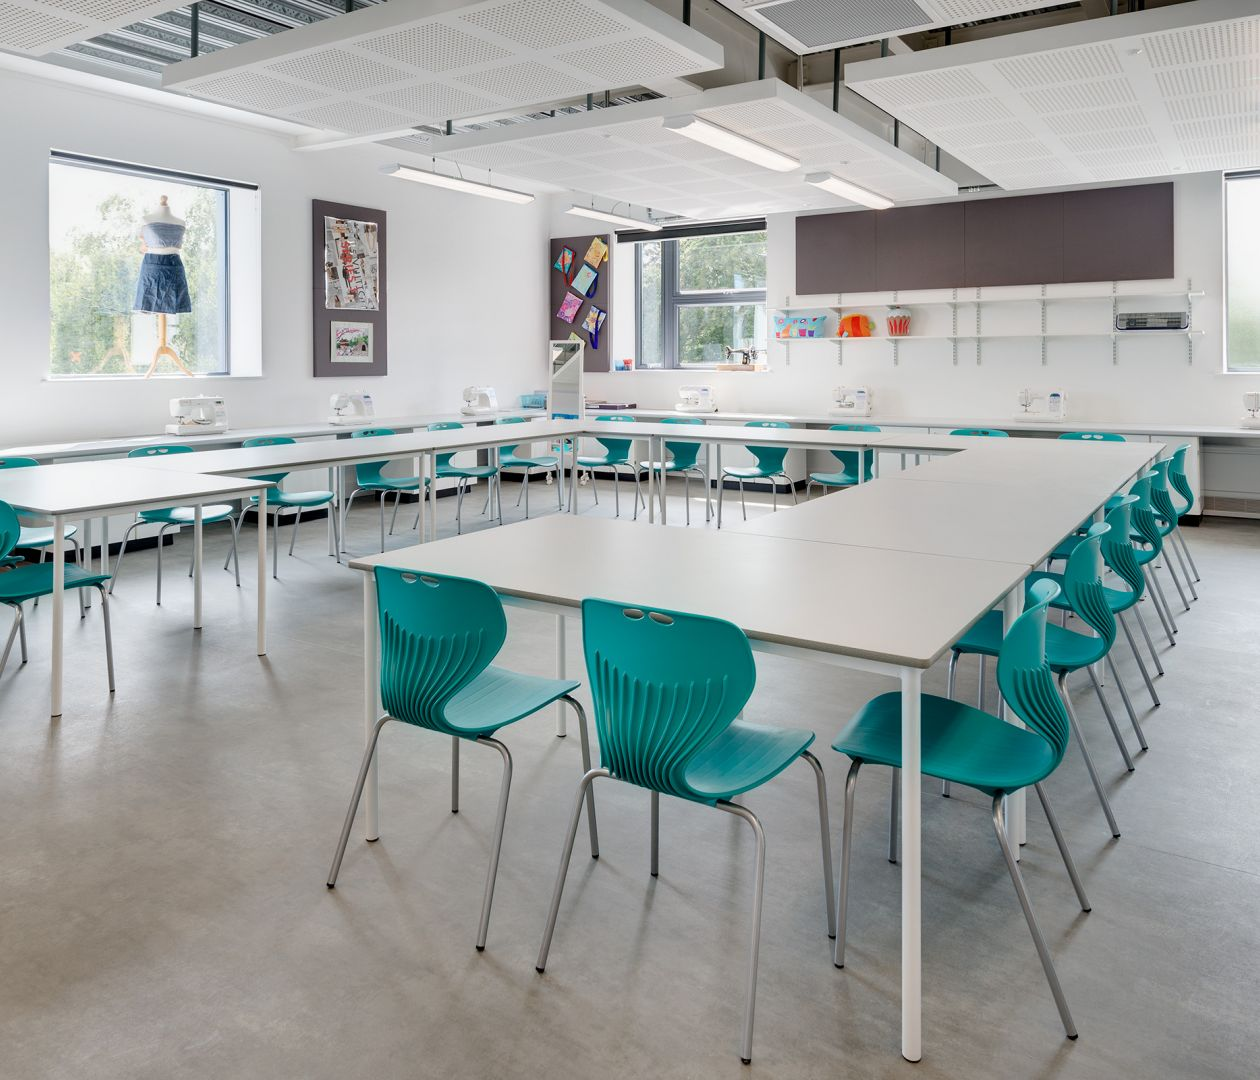 Independent Schools, Westcountry Group ergonomic classroom furniture